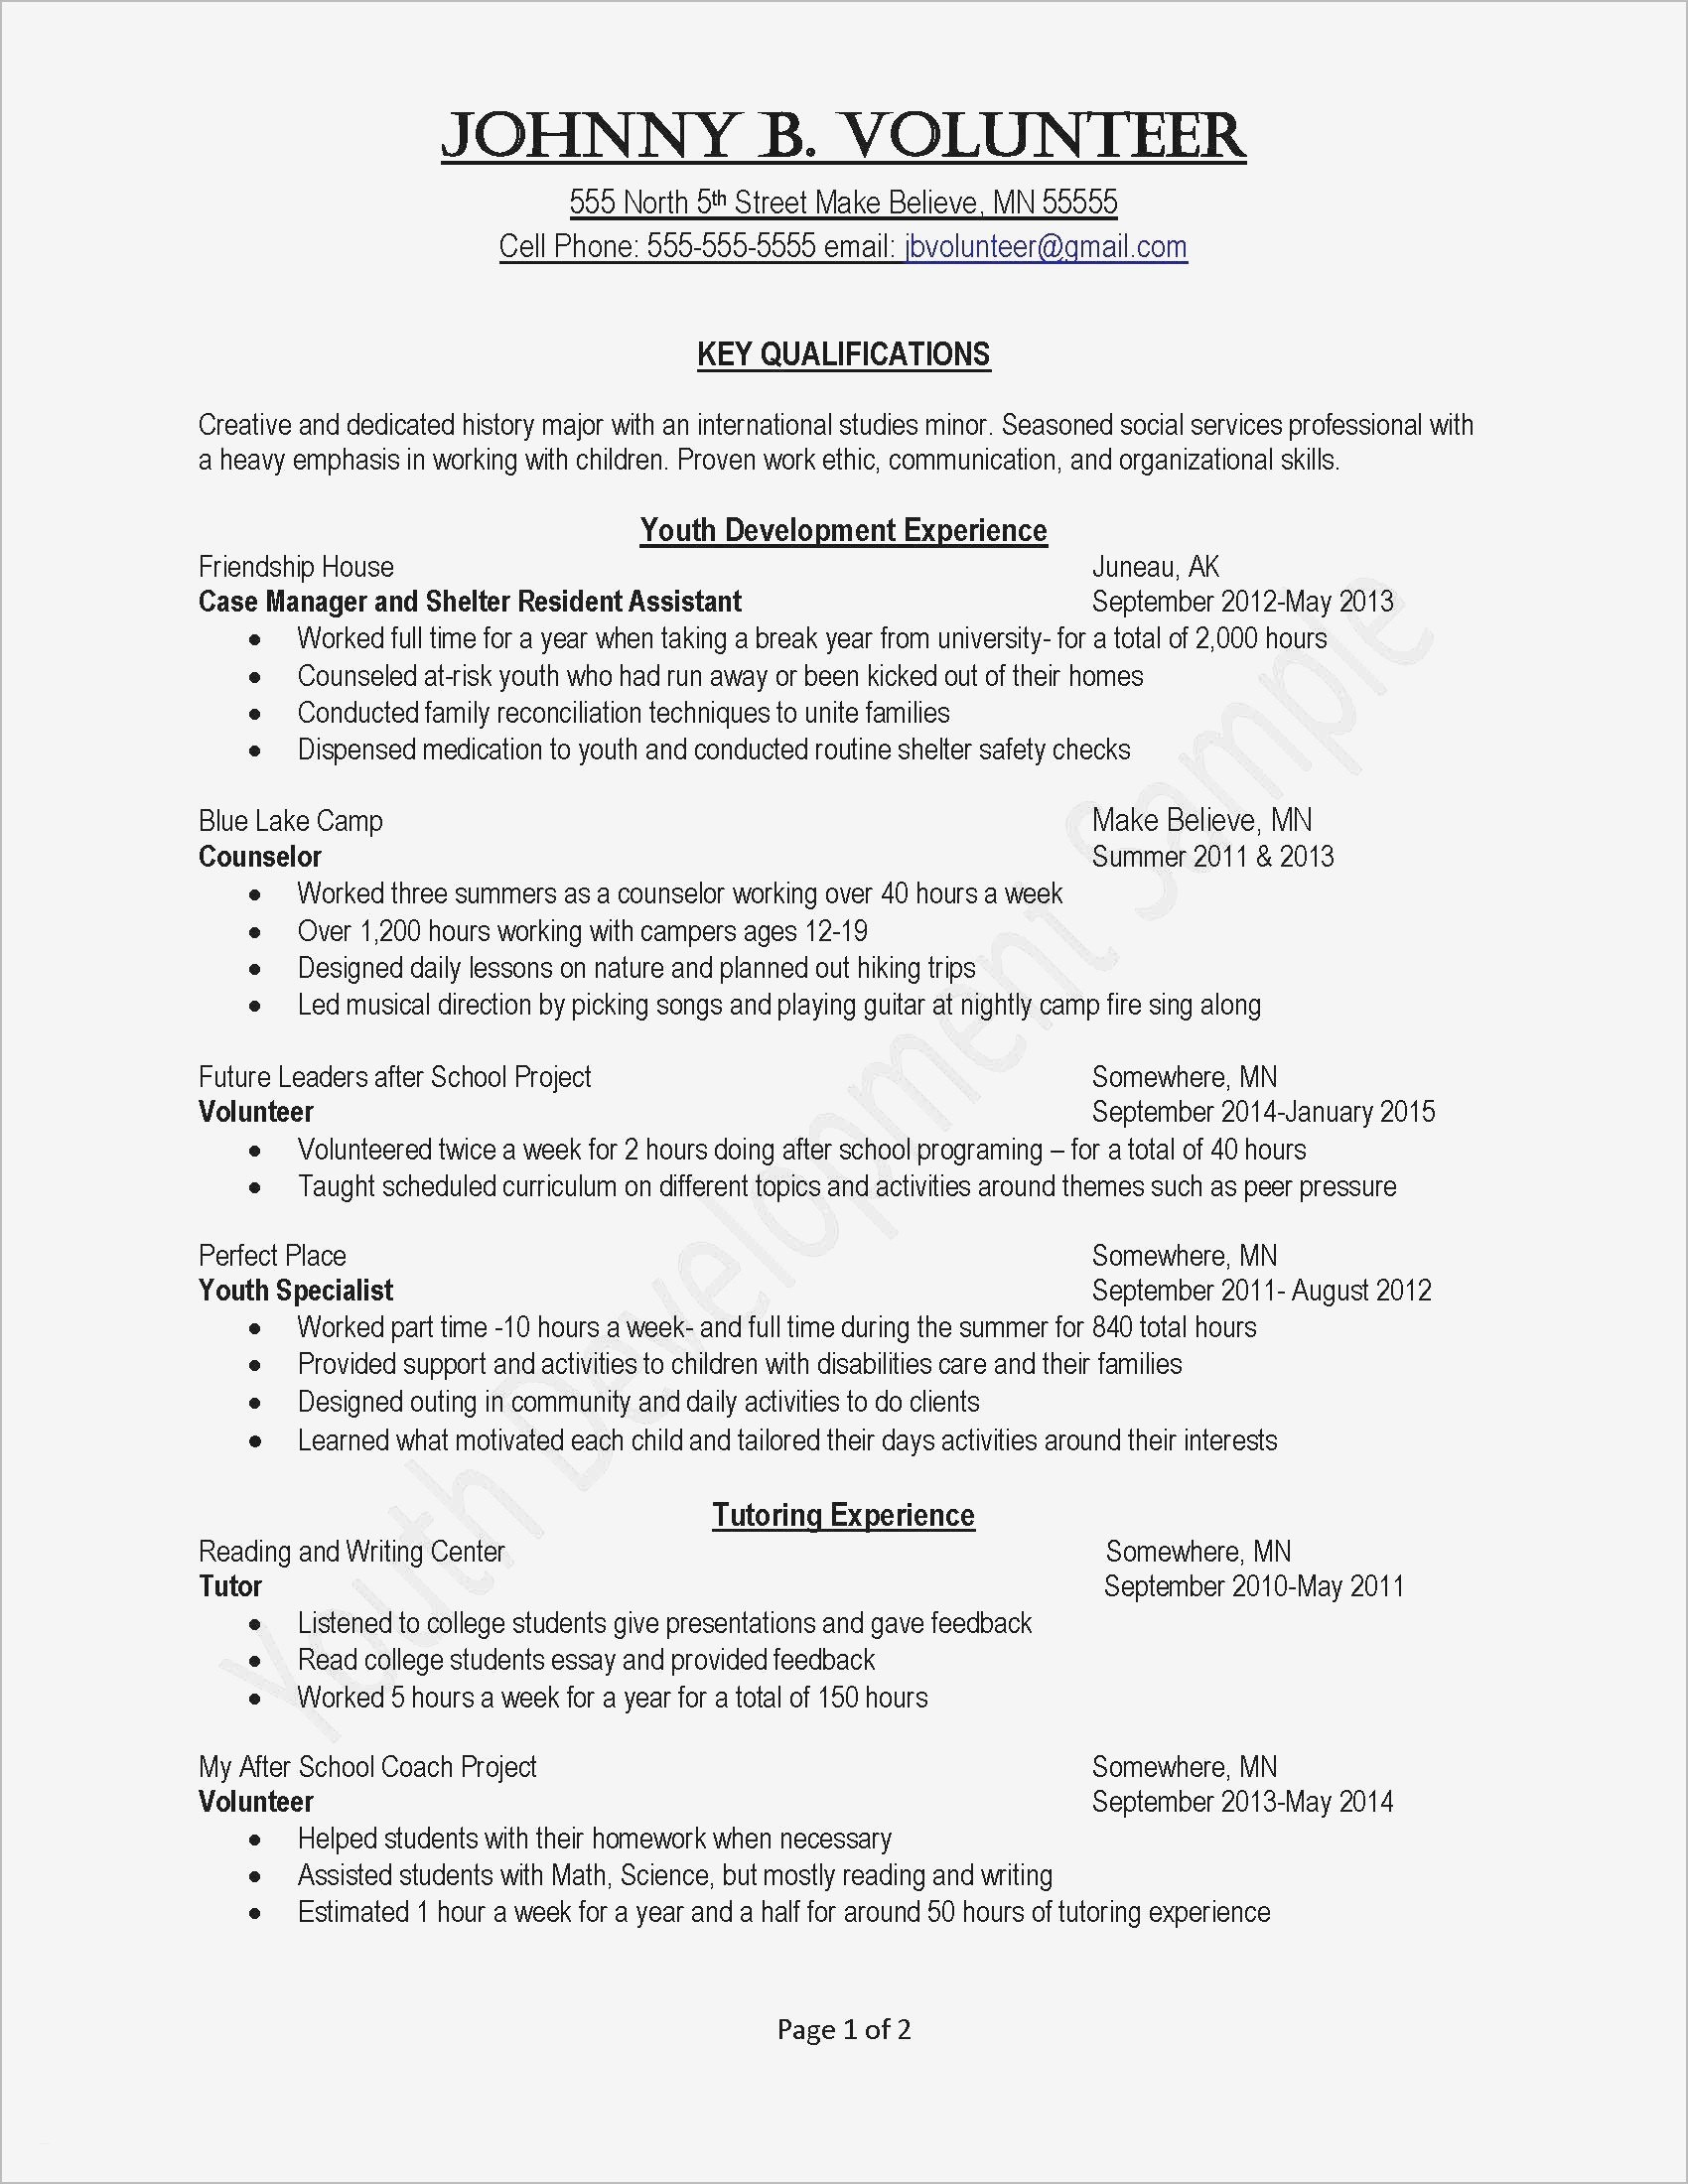 template for cover letter for teaching position example-Job fer Letter Template Us Copy Od Consultant Cover Letter Fungram New 21 Resume Templates for 5-e